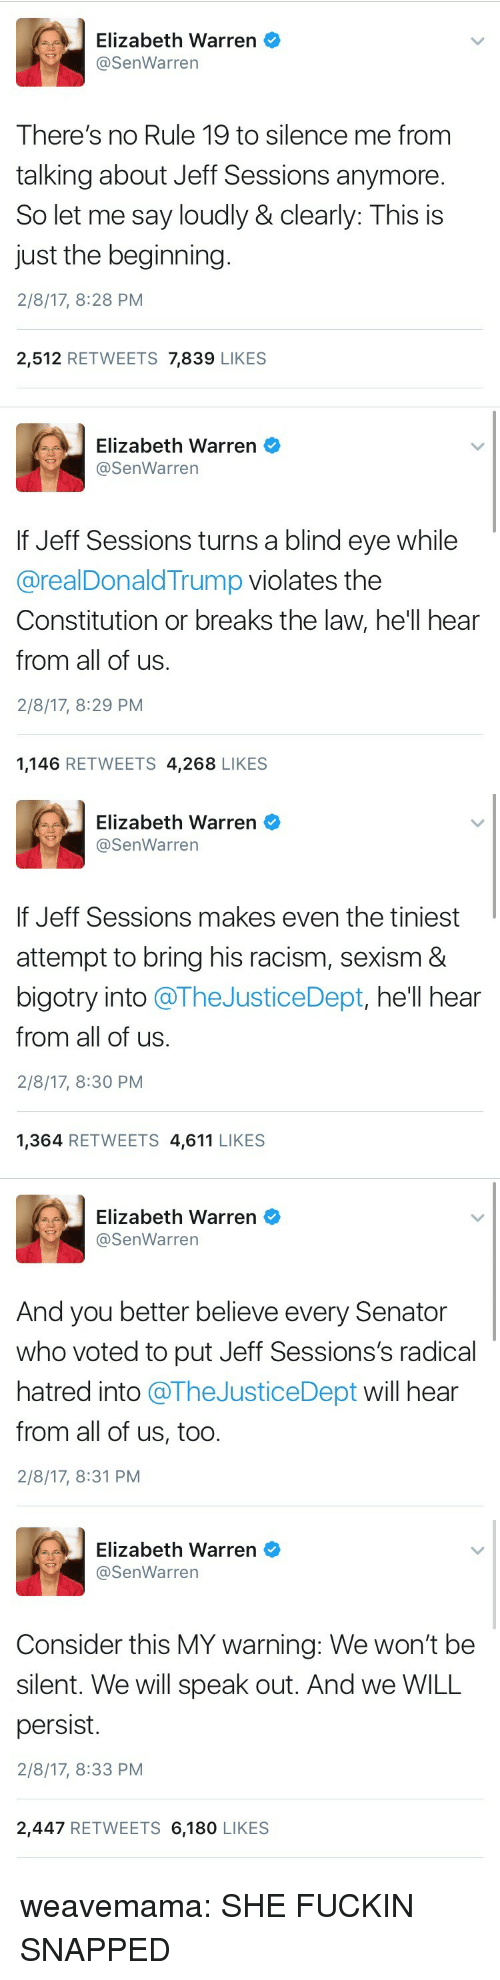 Elizabeth Warren, Racism, and Target: Elizabeth Warren  @SenWarren  There's no Rule 19 to silence me from  talking about Jeff Sessions anymore.  So let me say loudly & clearly: This is  just the beginning.  2/8/17, 8:28 PM  2,512 RETWEETS 7,839 LIKES   Elizabeth Warren  SenWarrern  If Jeff Sessions turns a blind eye while  @realDonaldTrump violates the  Constitution or breaks the law, he'll hear  from all of us.  2/8/17, 8:29 PM  1,146 RETWEETS 4,268 LIKES   Elizabeth Warren  @SenWarren  If Jeff Sessions makes even the tiniest  attempt to bring his racism, sexism &  bigotry into @TheJusticeDept, hell hear  from all of us.  2/8/17, 8:30 PM  1,364 RETWEETS 4,611 LIKES   Elizabeth Warren  @SenWarren  And you better believe every Senator  who voted to put Jeff Sessions's radical  hatred into @TheJusticeDept will hear  from all of us, too.  2/8/17, 8:31 PM   Elizabeth Warren  @SenWarren  Consider this MY warning: We won't be  silent. We will speak out. And we WILL  persist.  2/8/17, 8:33 PM  2,447 RETWEETS 6,180 LIKES weavemama:  SHE FUCKIN SNAPPED